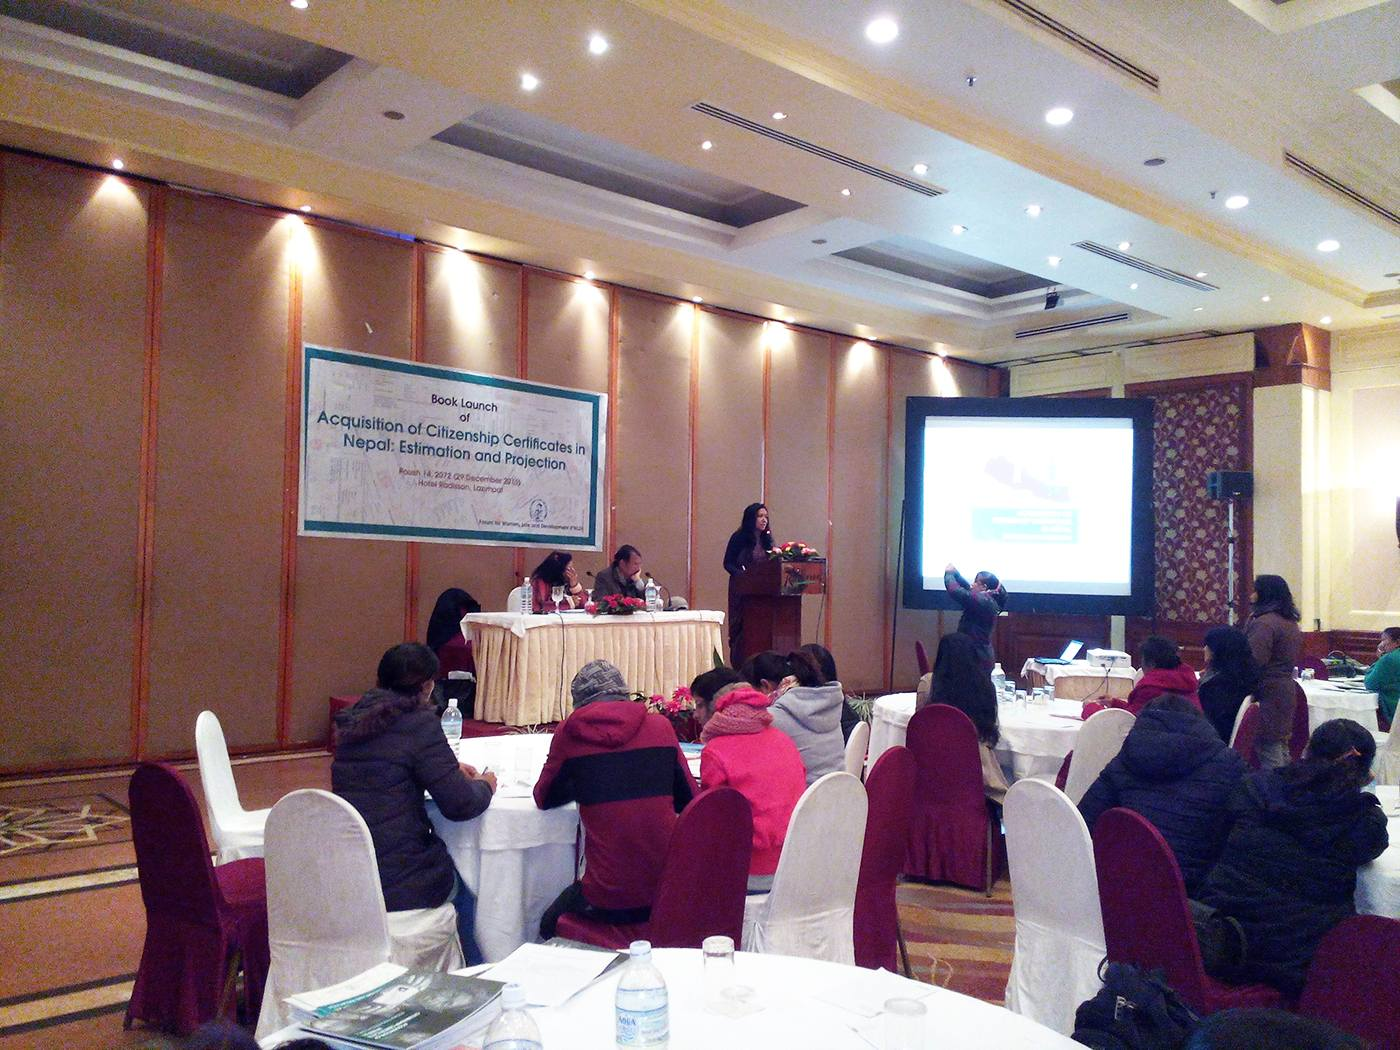 Book Launch of 'Acqusition of Citizenship Certificates in Nepal: Estimation and Projection' by Sapana Pradhan Malla and Meera Dhungana in December 2015